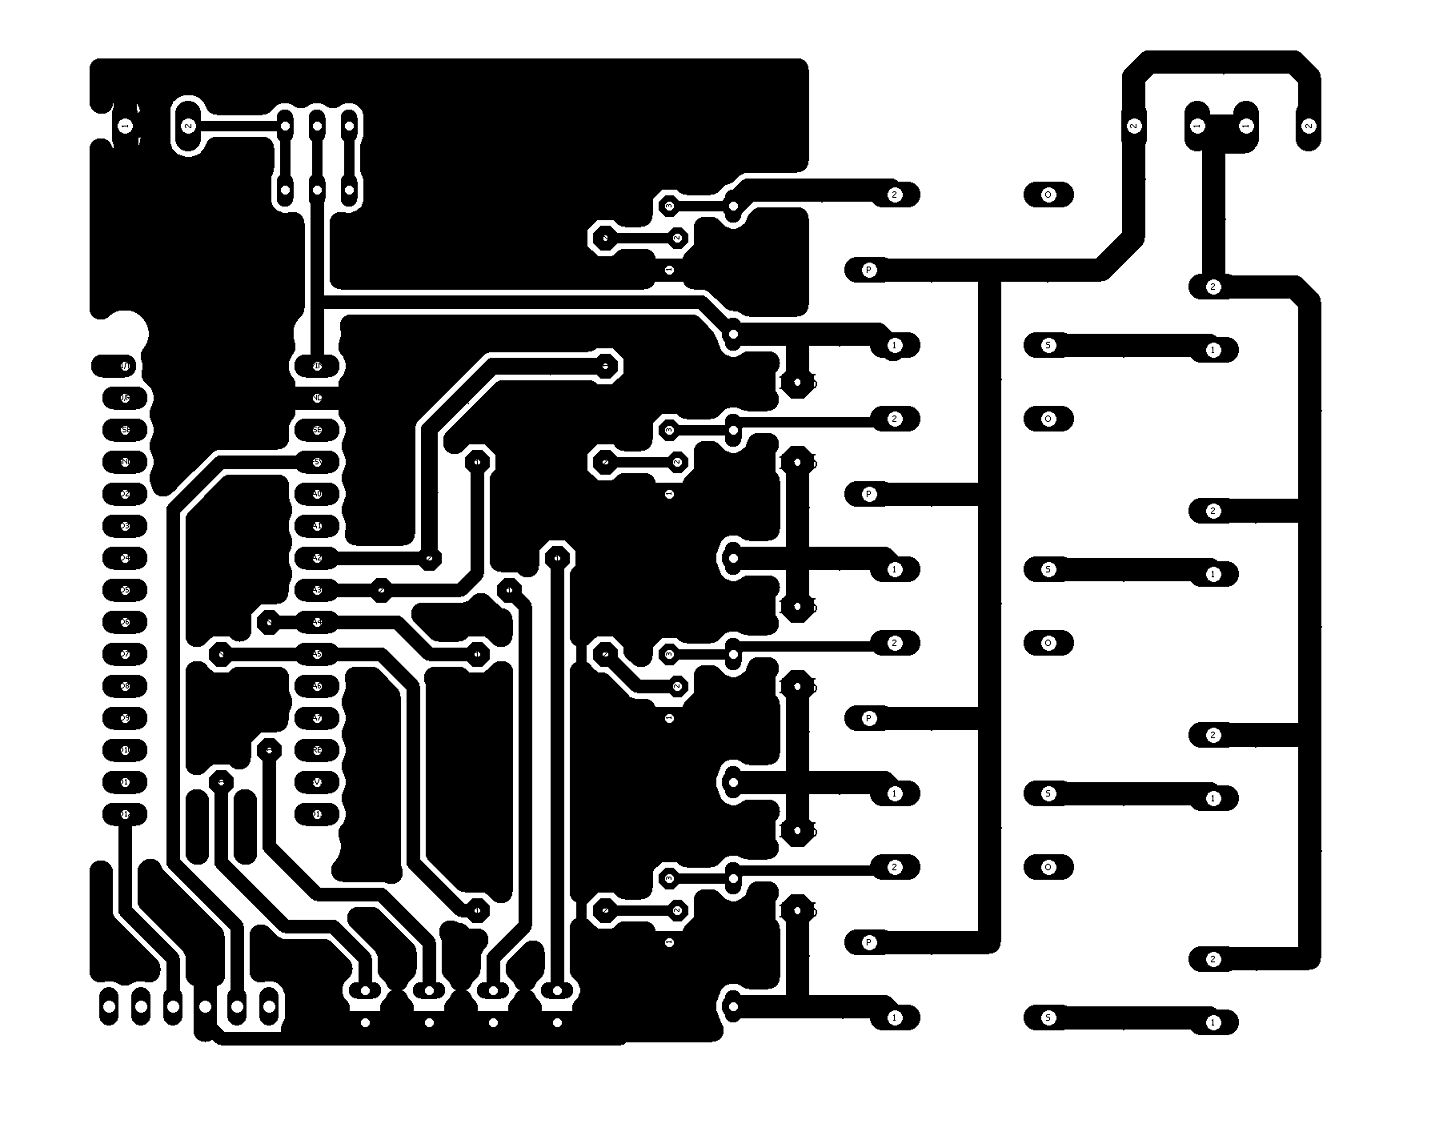 hight resolution of remote control house pcb